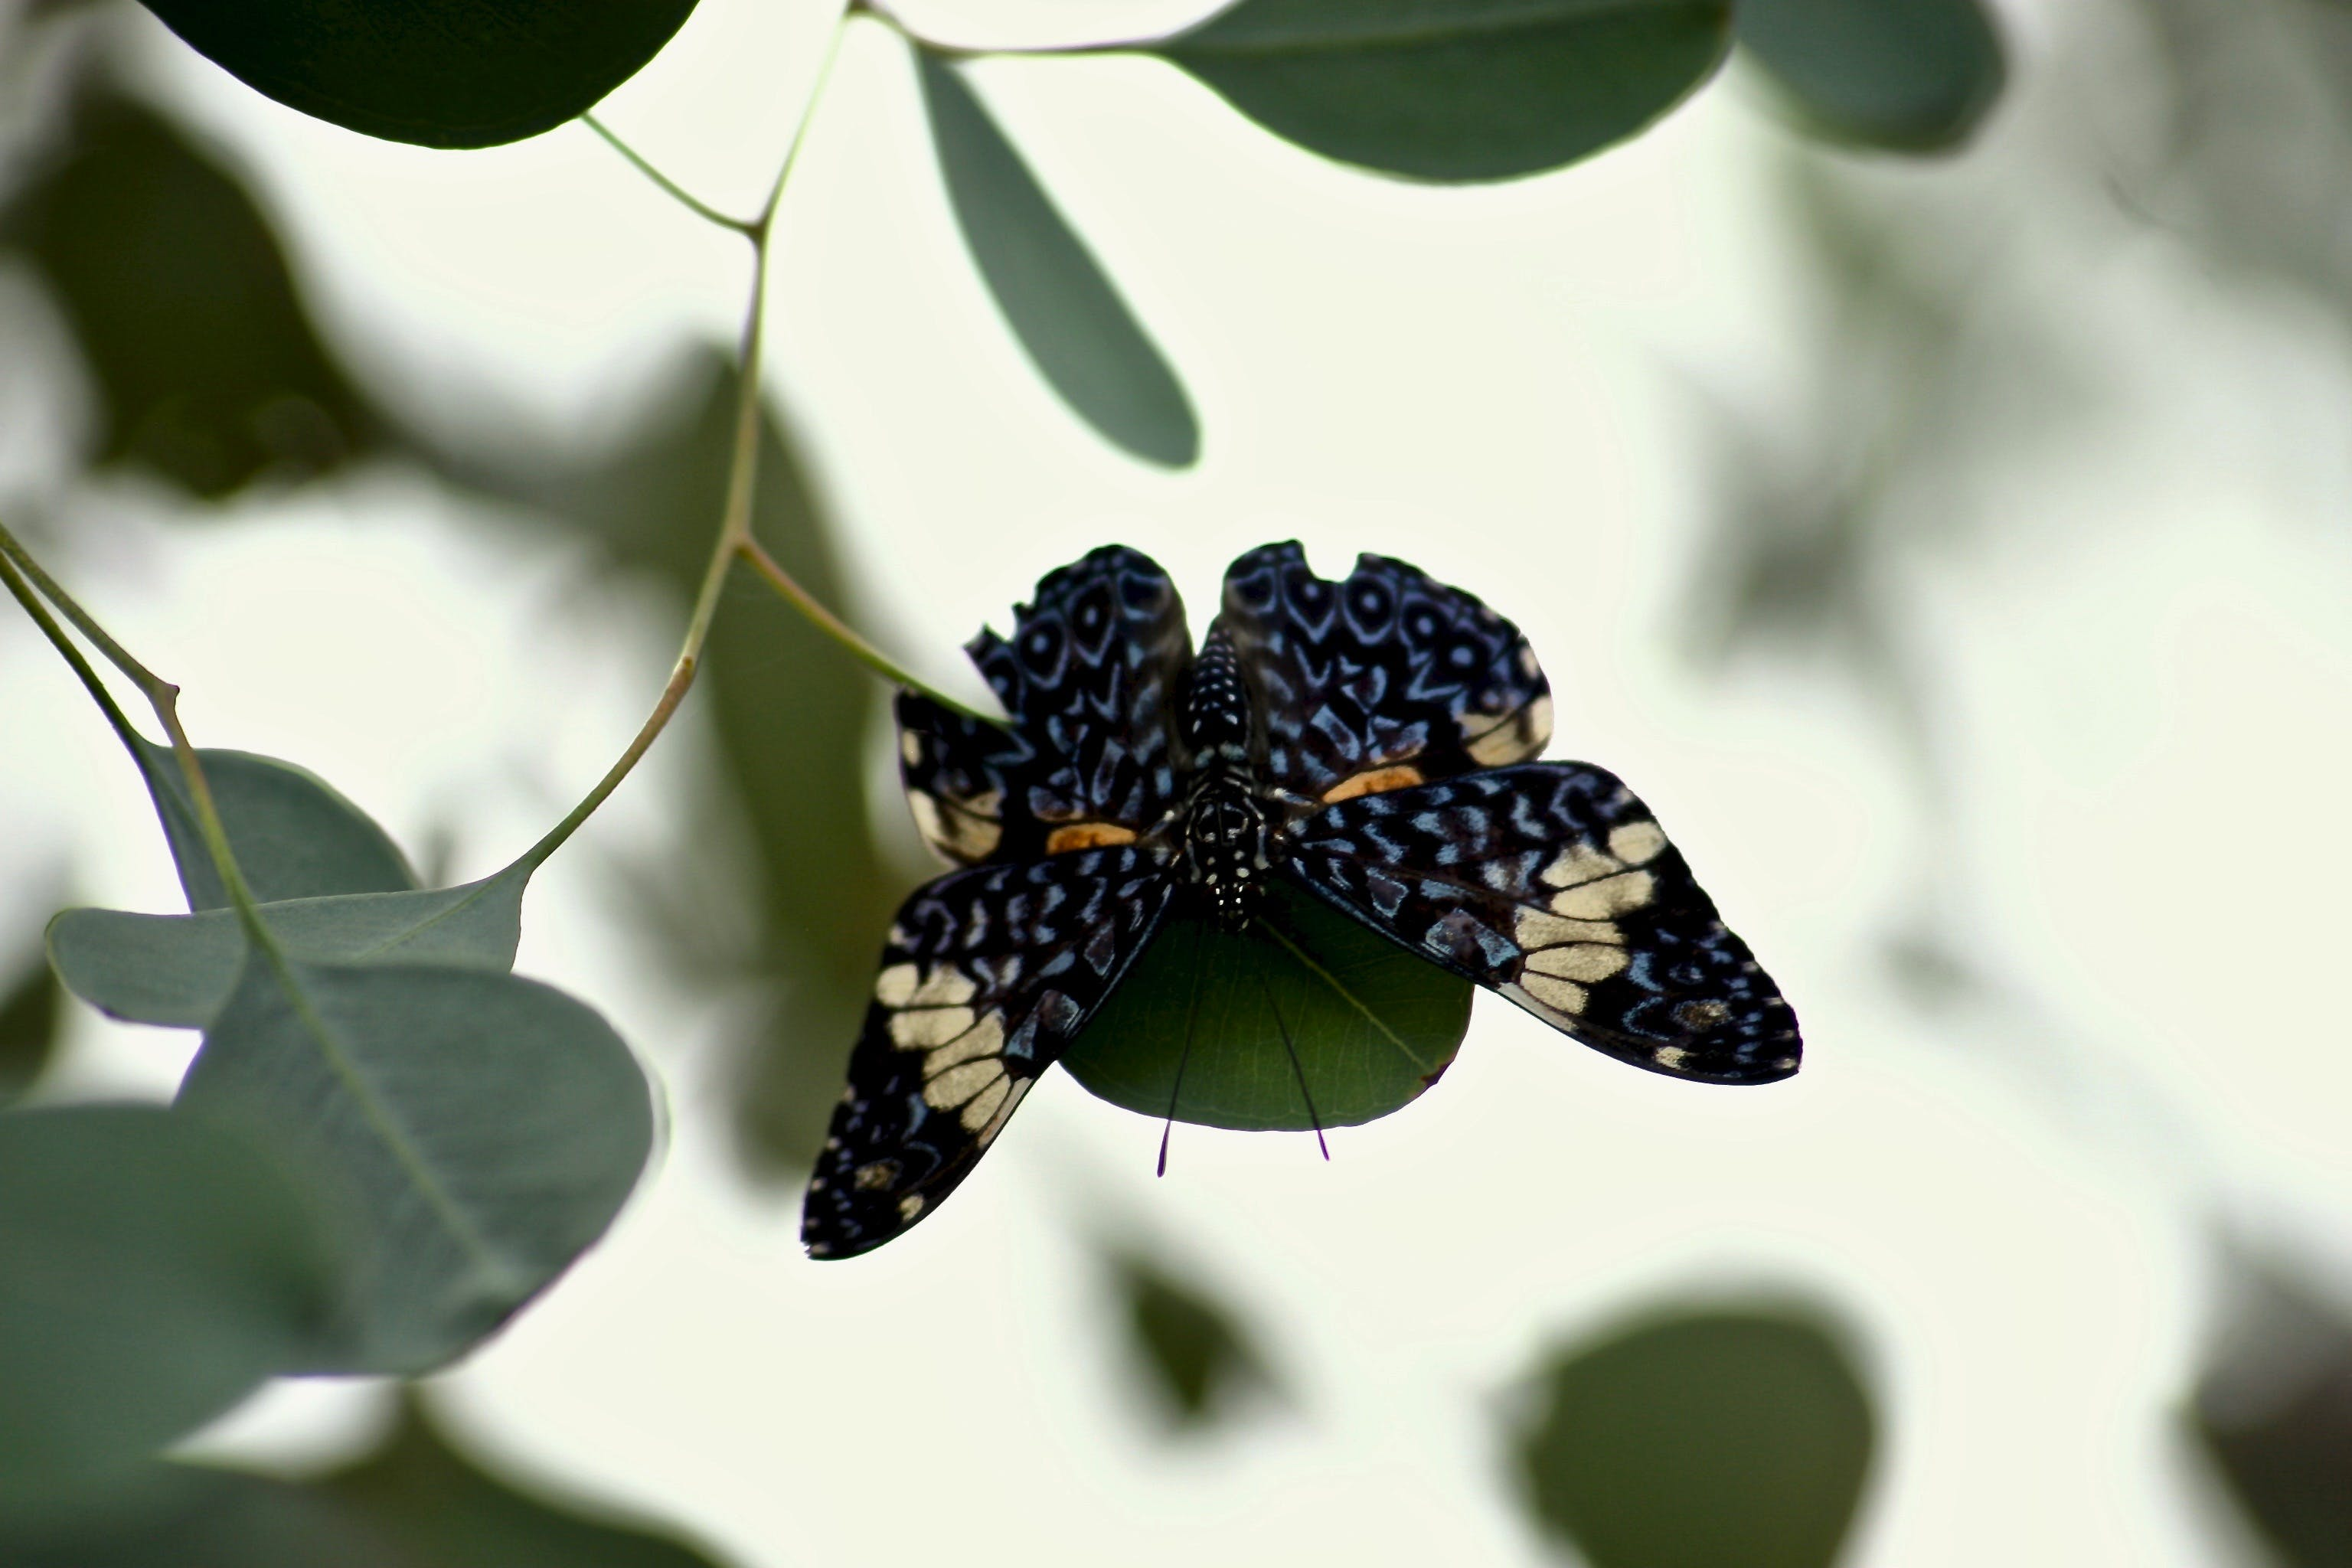 Black and Brown Butterfly Perched on Leaf